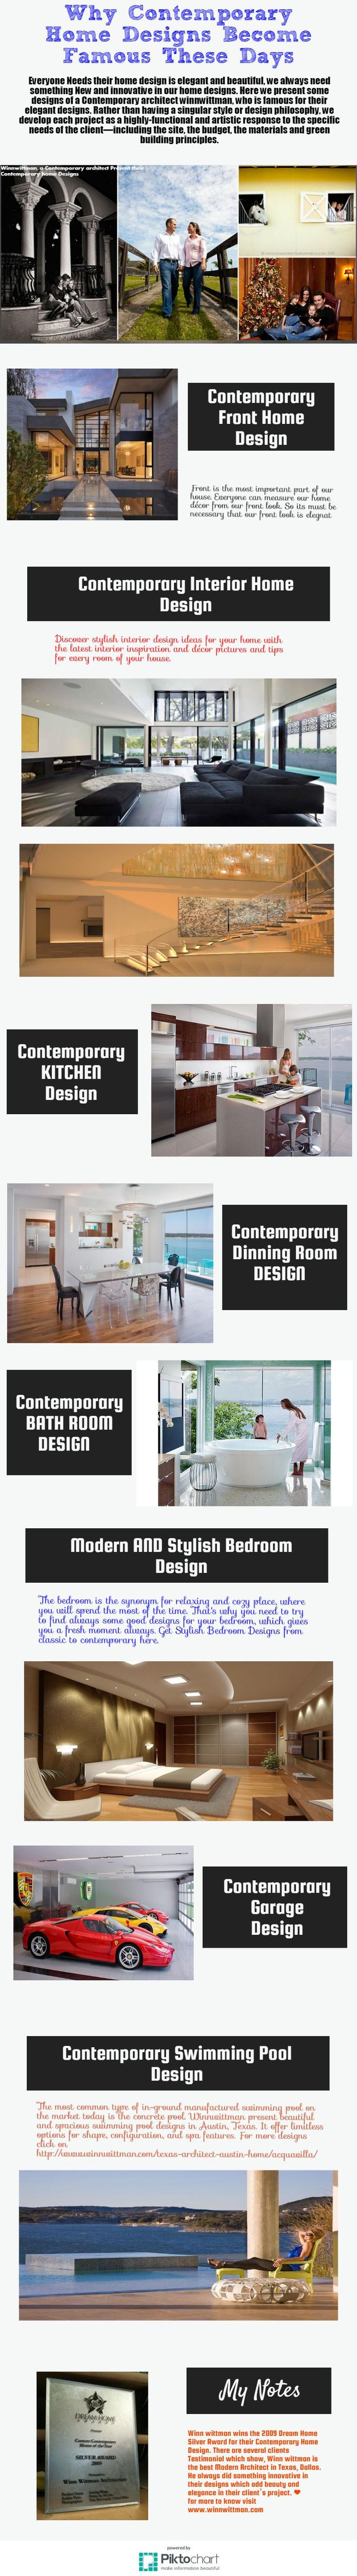 Browse the contemporary home design images of residential architect san antonio. Uses proprietary, co-creative process to understand your unique aspirations and translate that into the ideal modern home suited to your lifestyle.for more visit him online at www.winnwittman.com